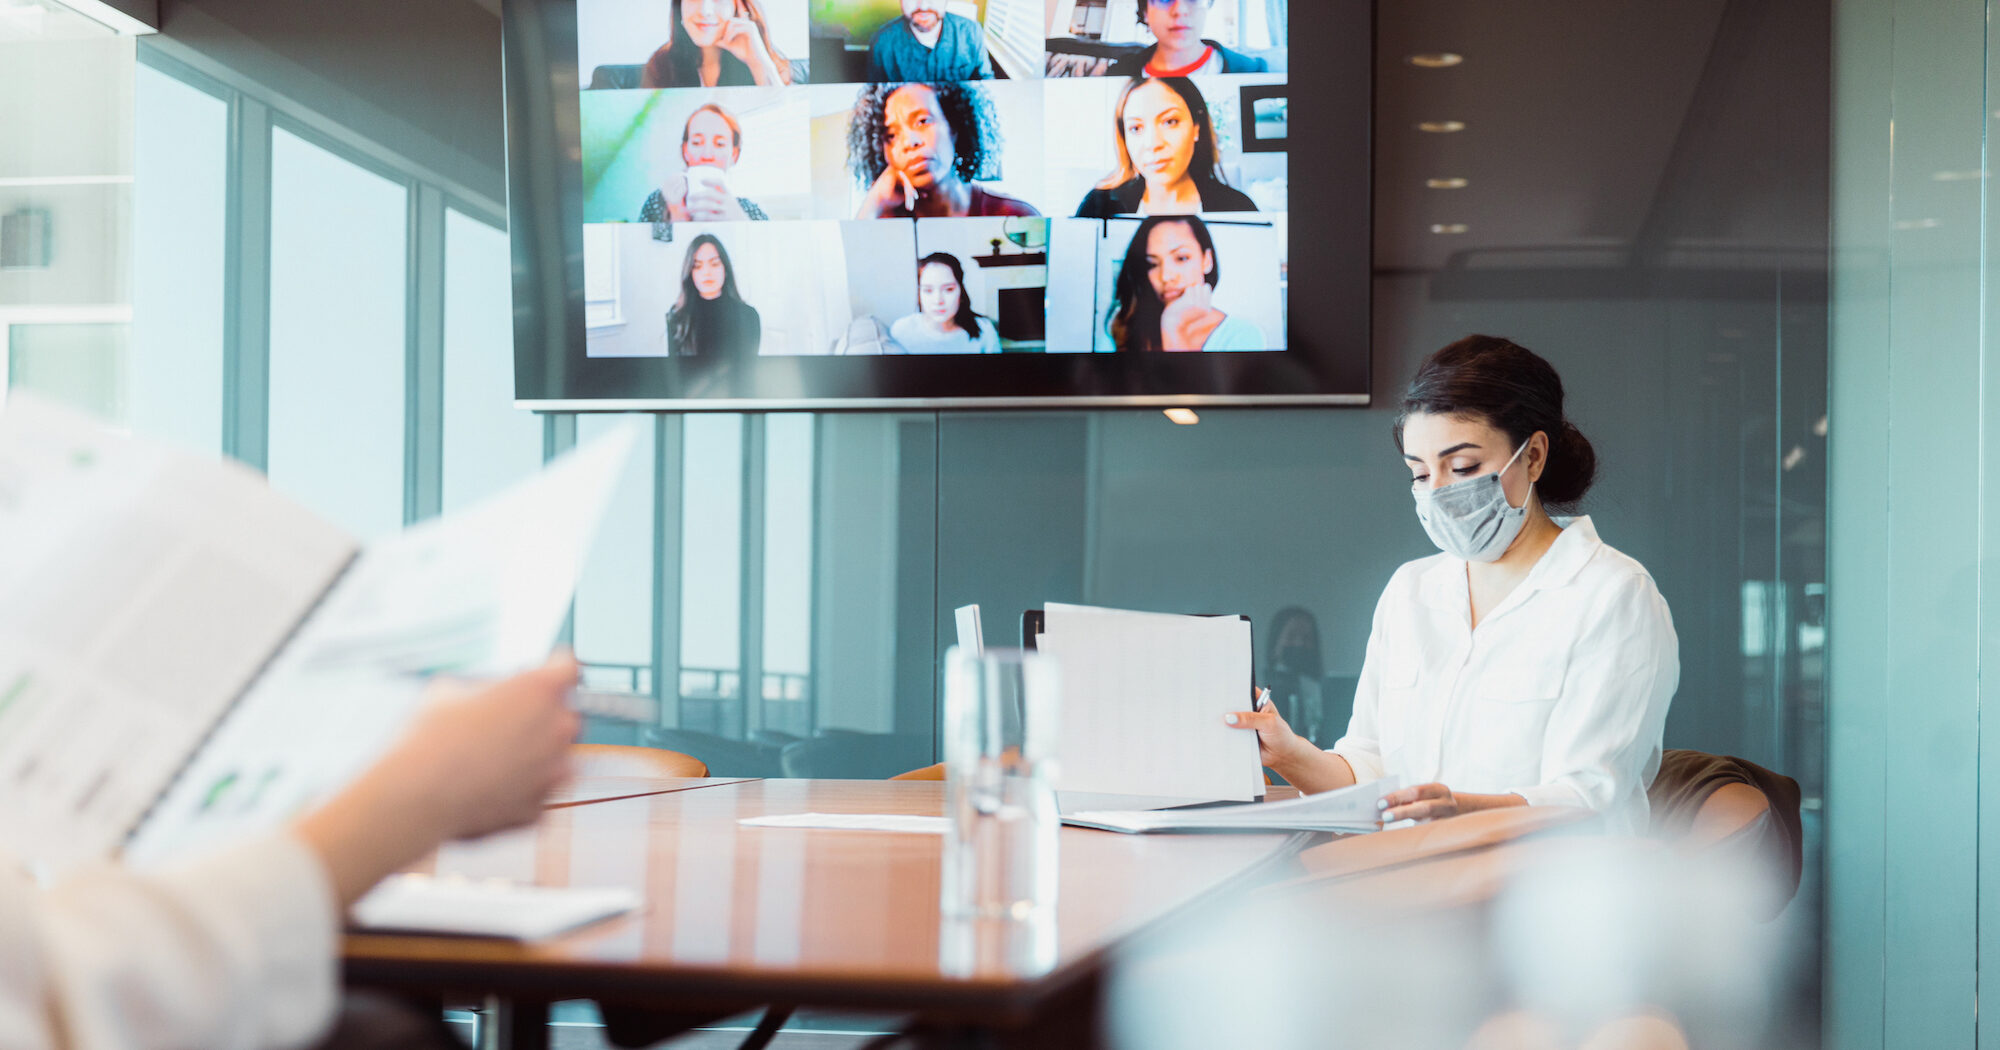 People at a conference table wearing masks with a videoconference in the background